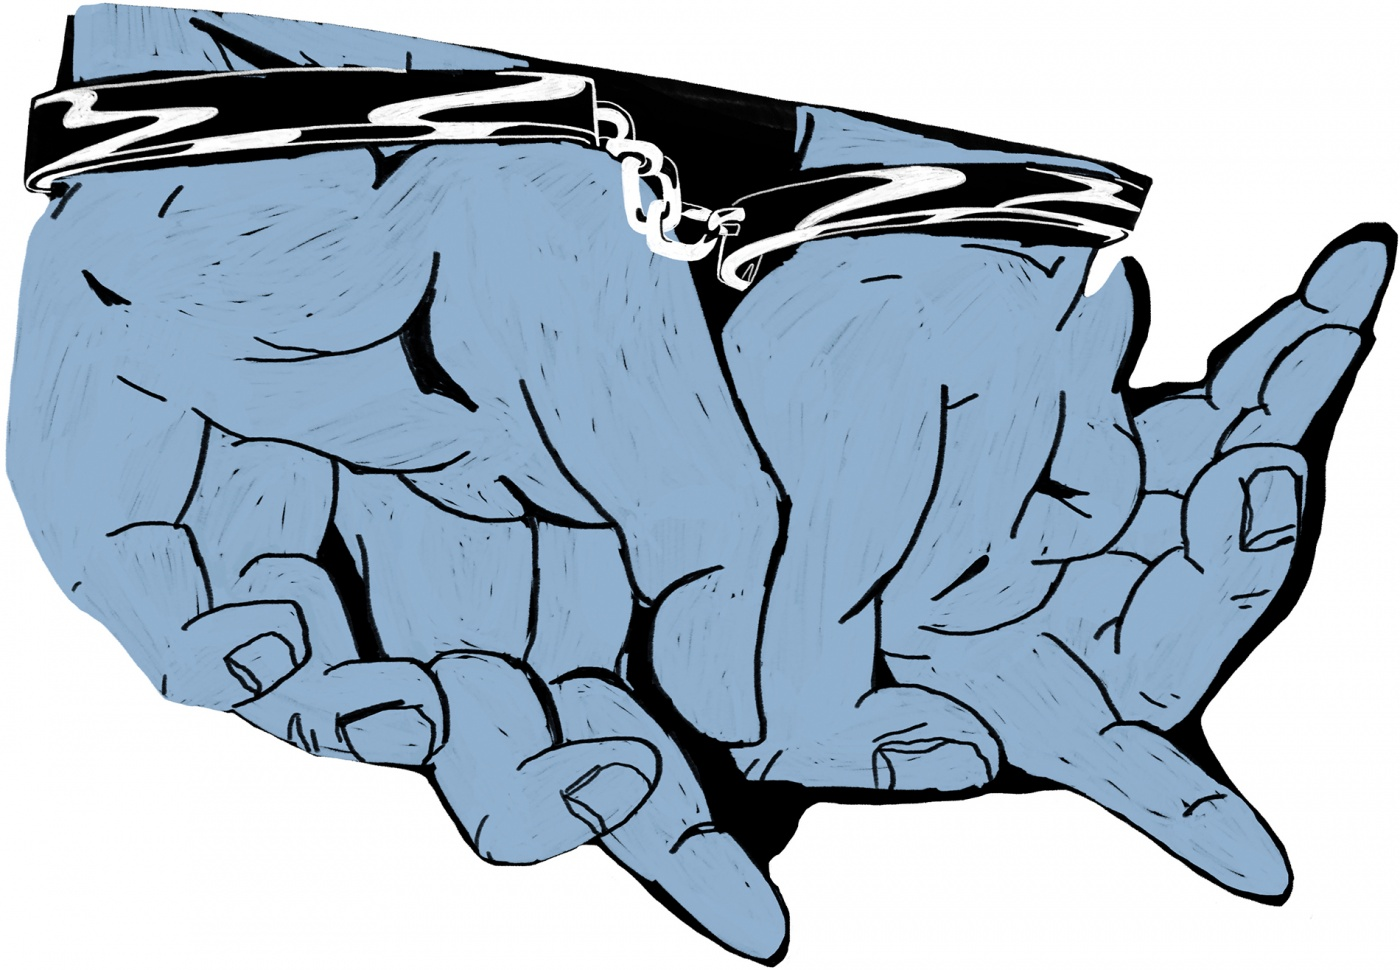 An illustration of hand-cuffed hands that form the shape of the USA